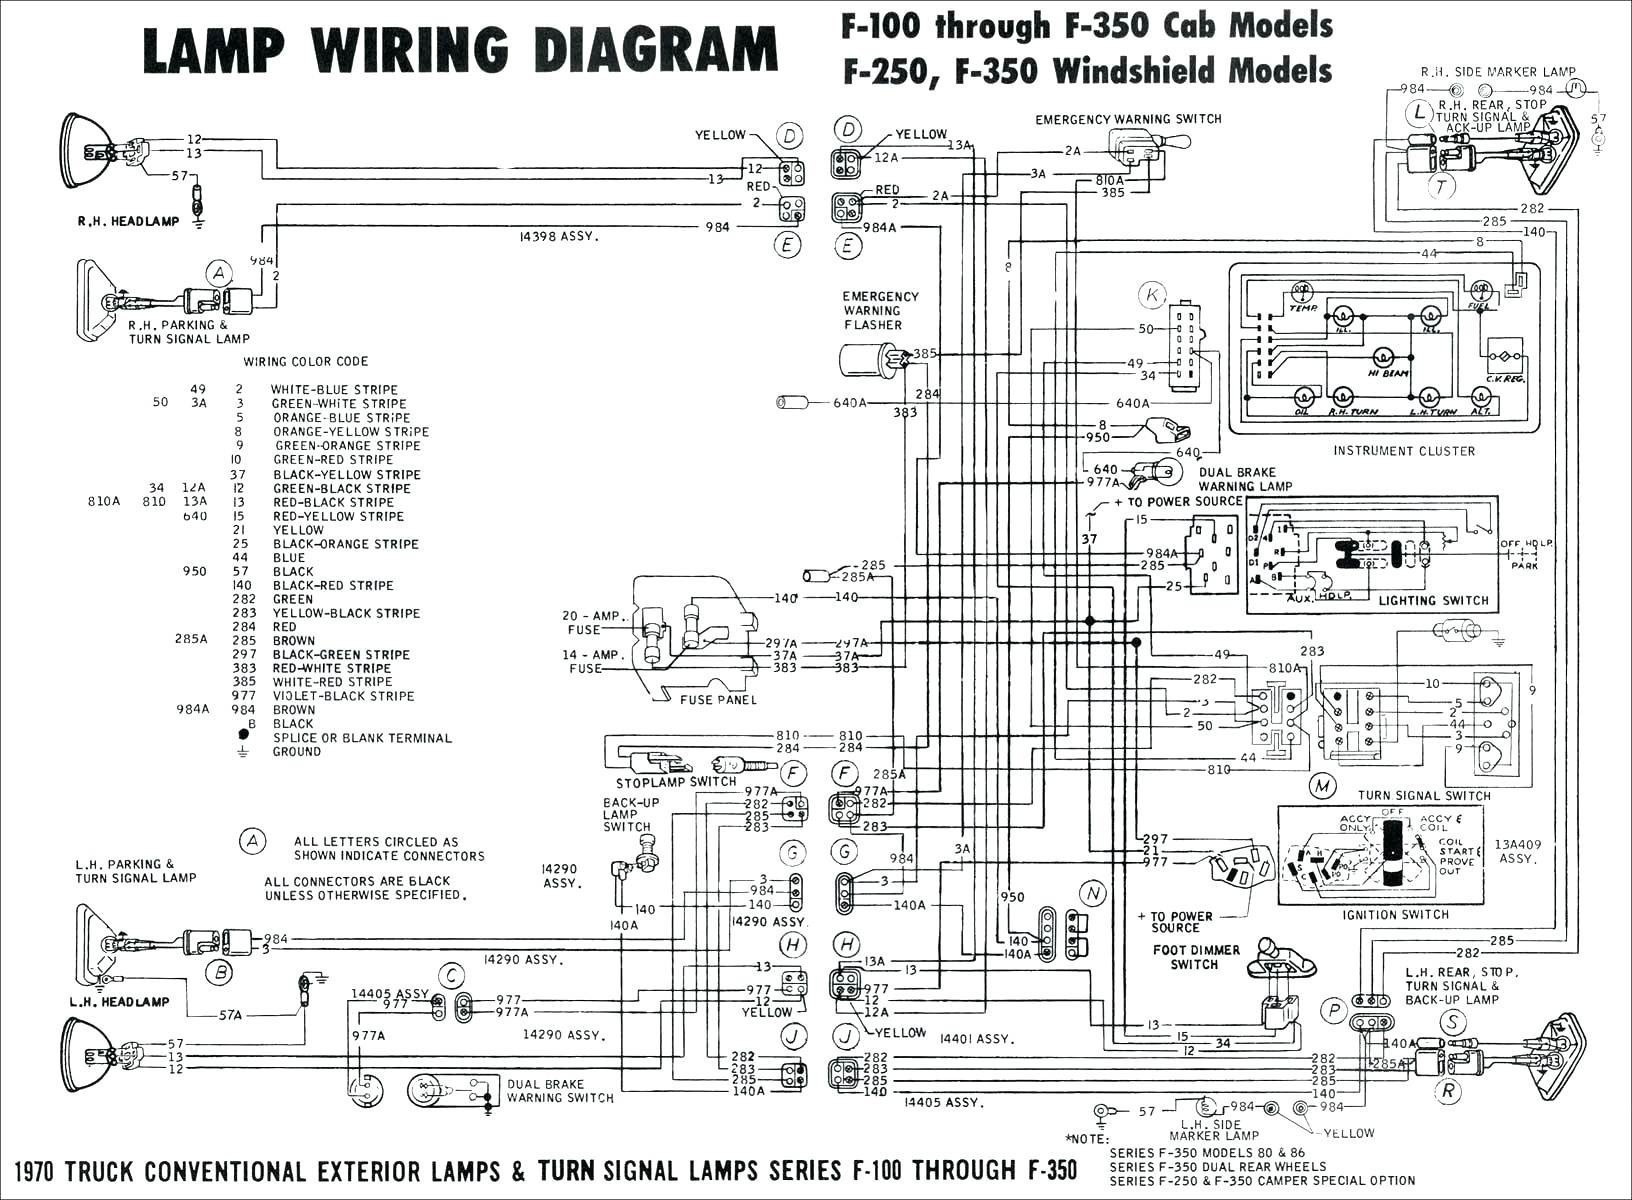 1993 Jeep Cherokee Wiring Diagram